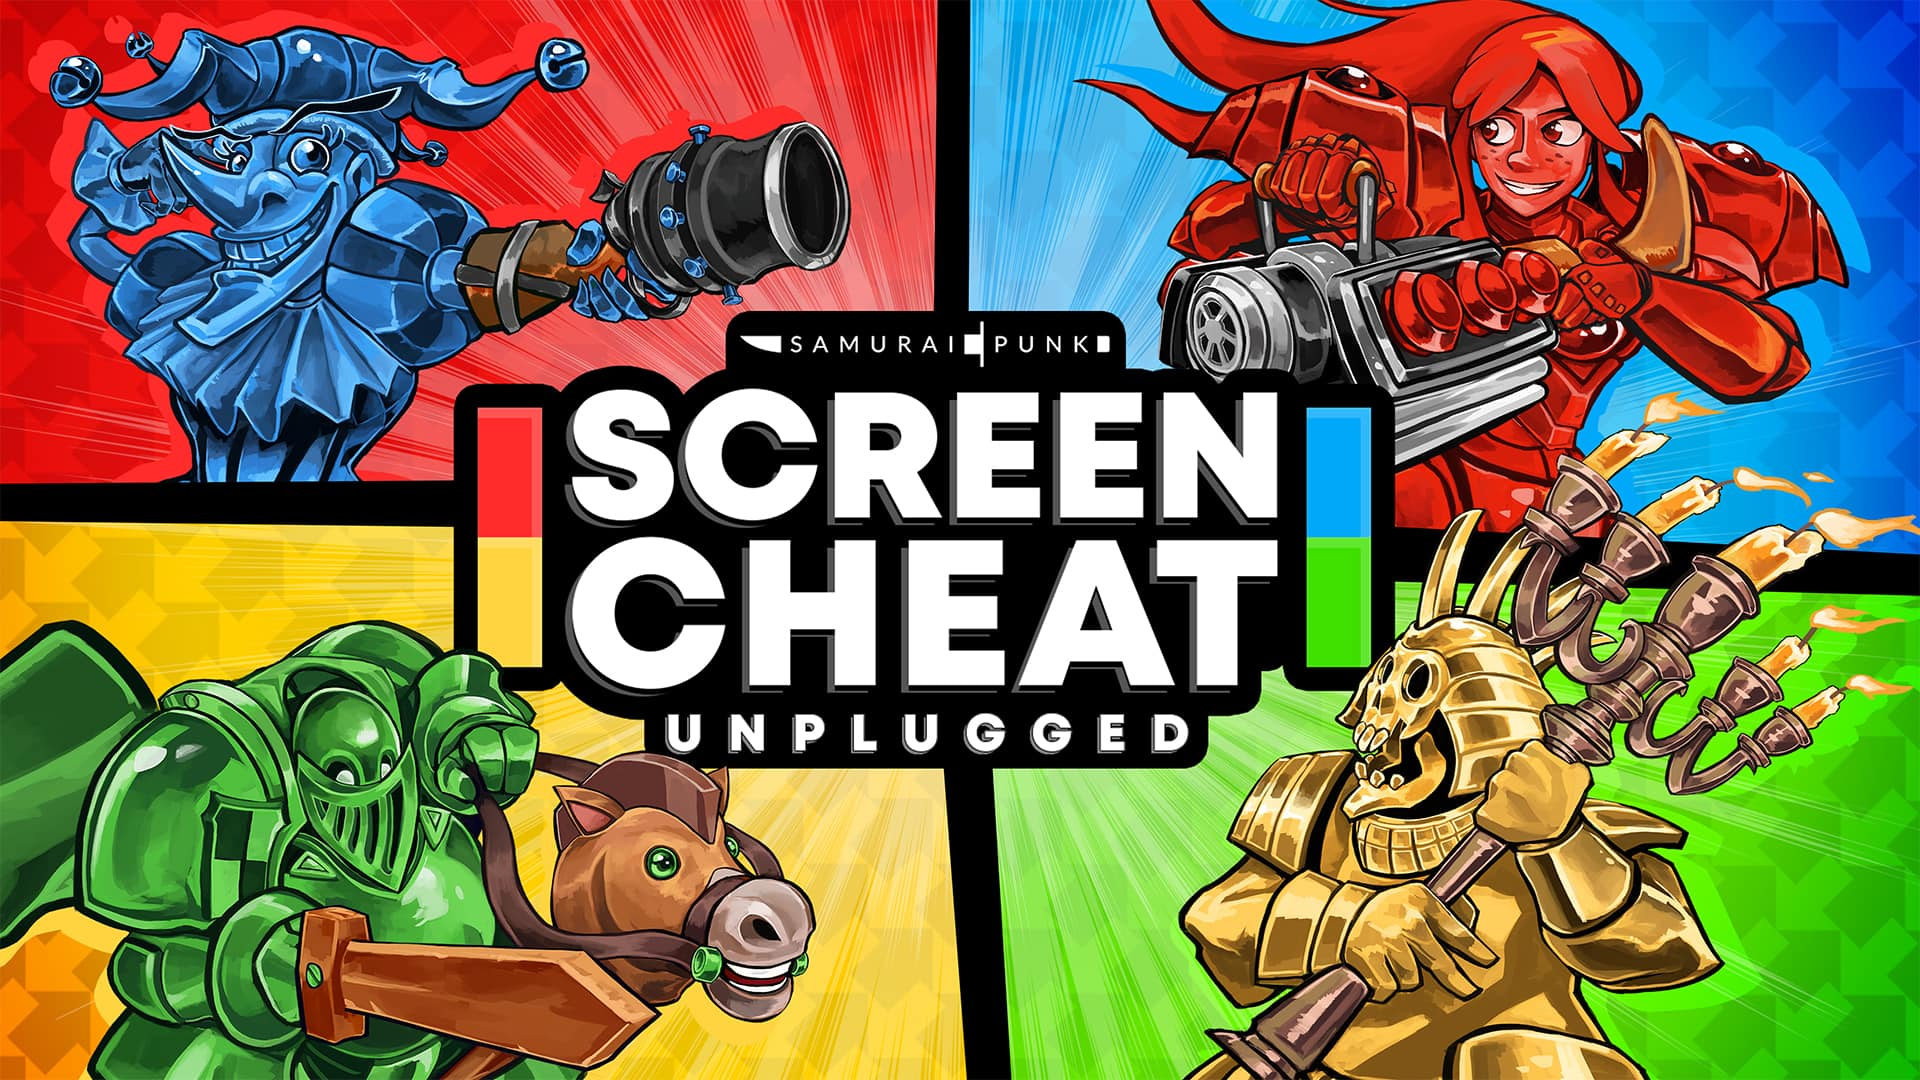 Screencheat: Unplugged - Nintendo Switch Digital Download - $2.59 @ Nintendo Game Store